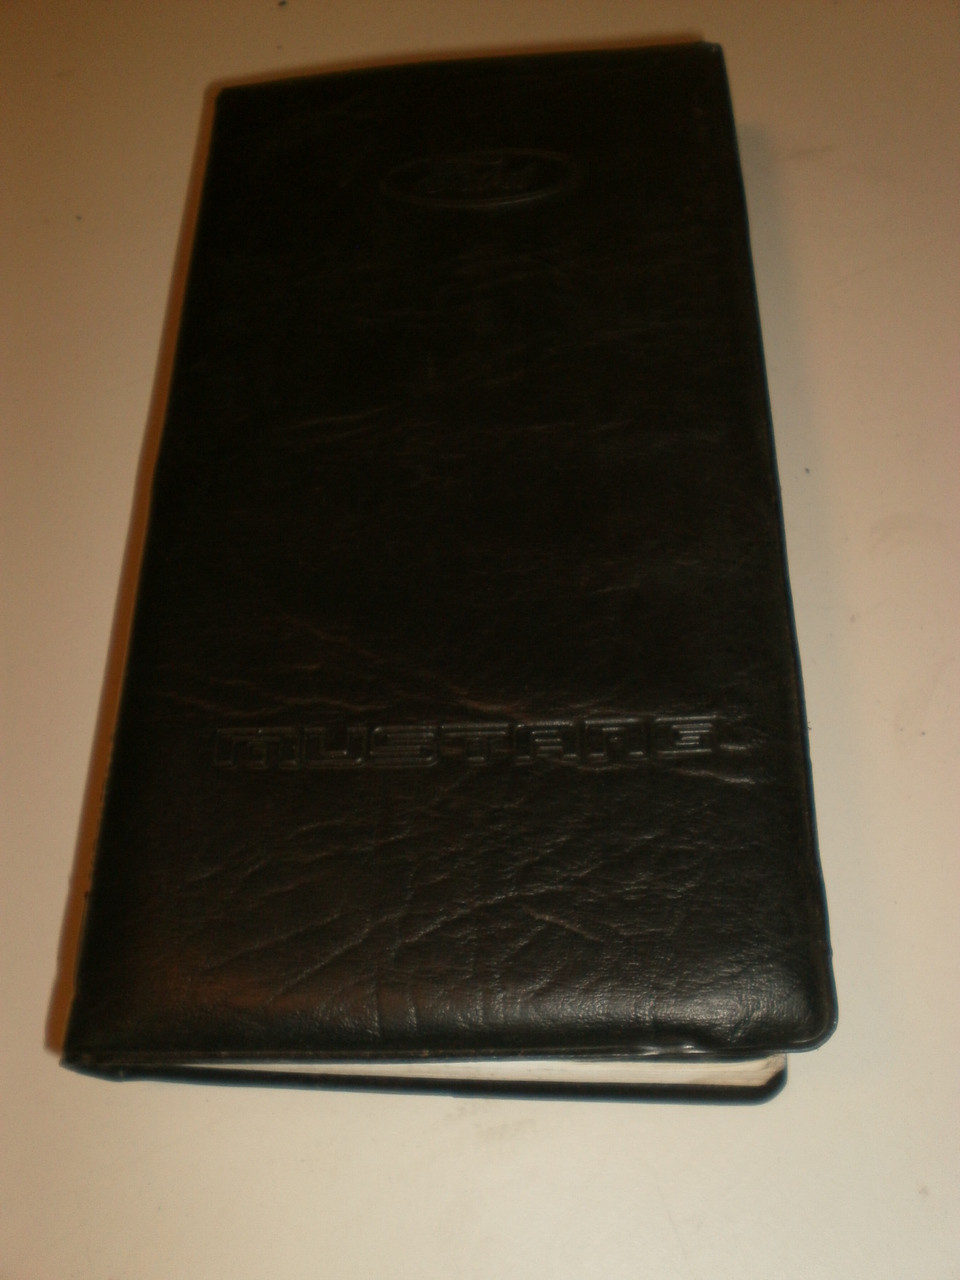 ford mustang owners manual case gt lx cobra